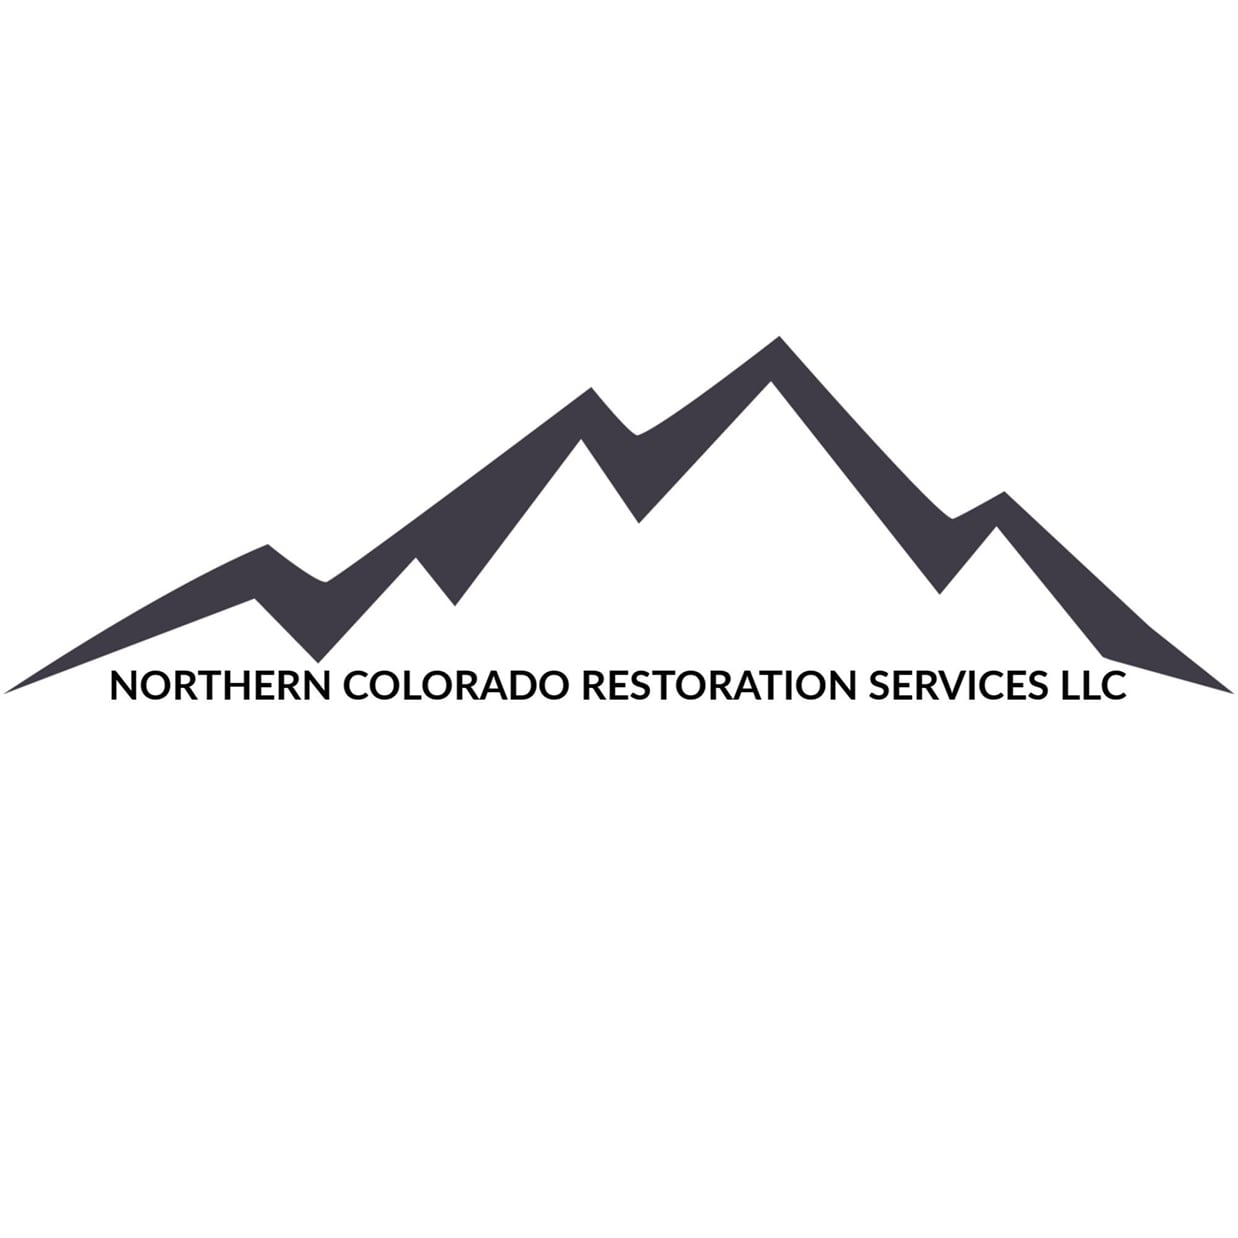 Northern Colorado Restoration Services